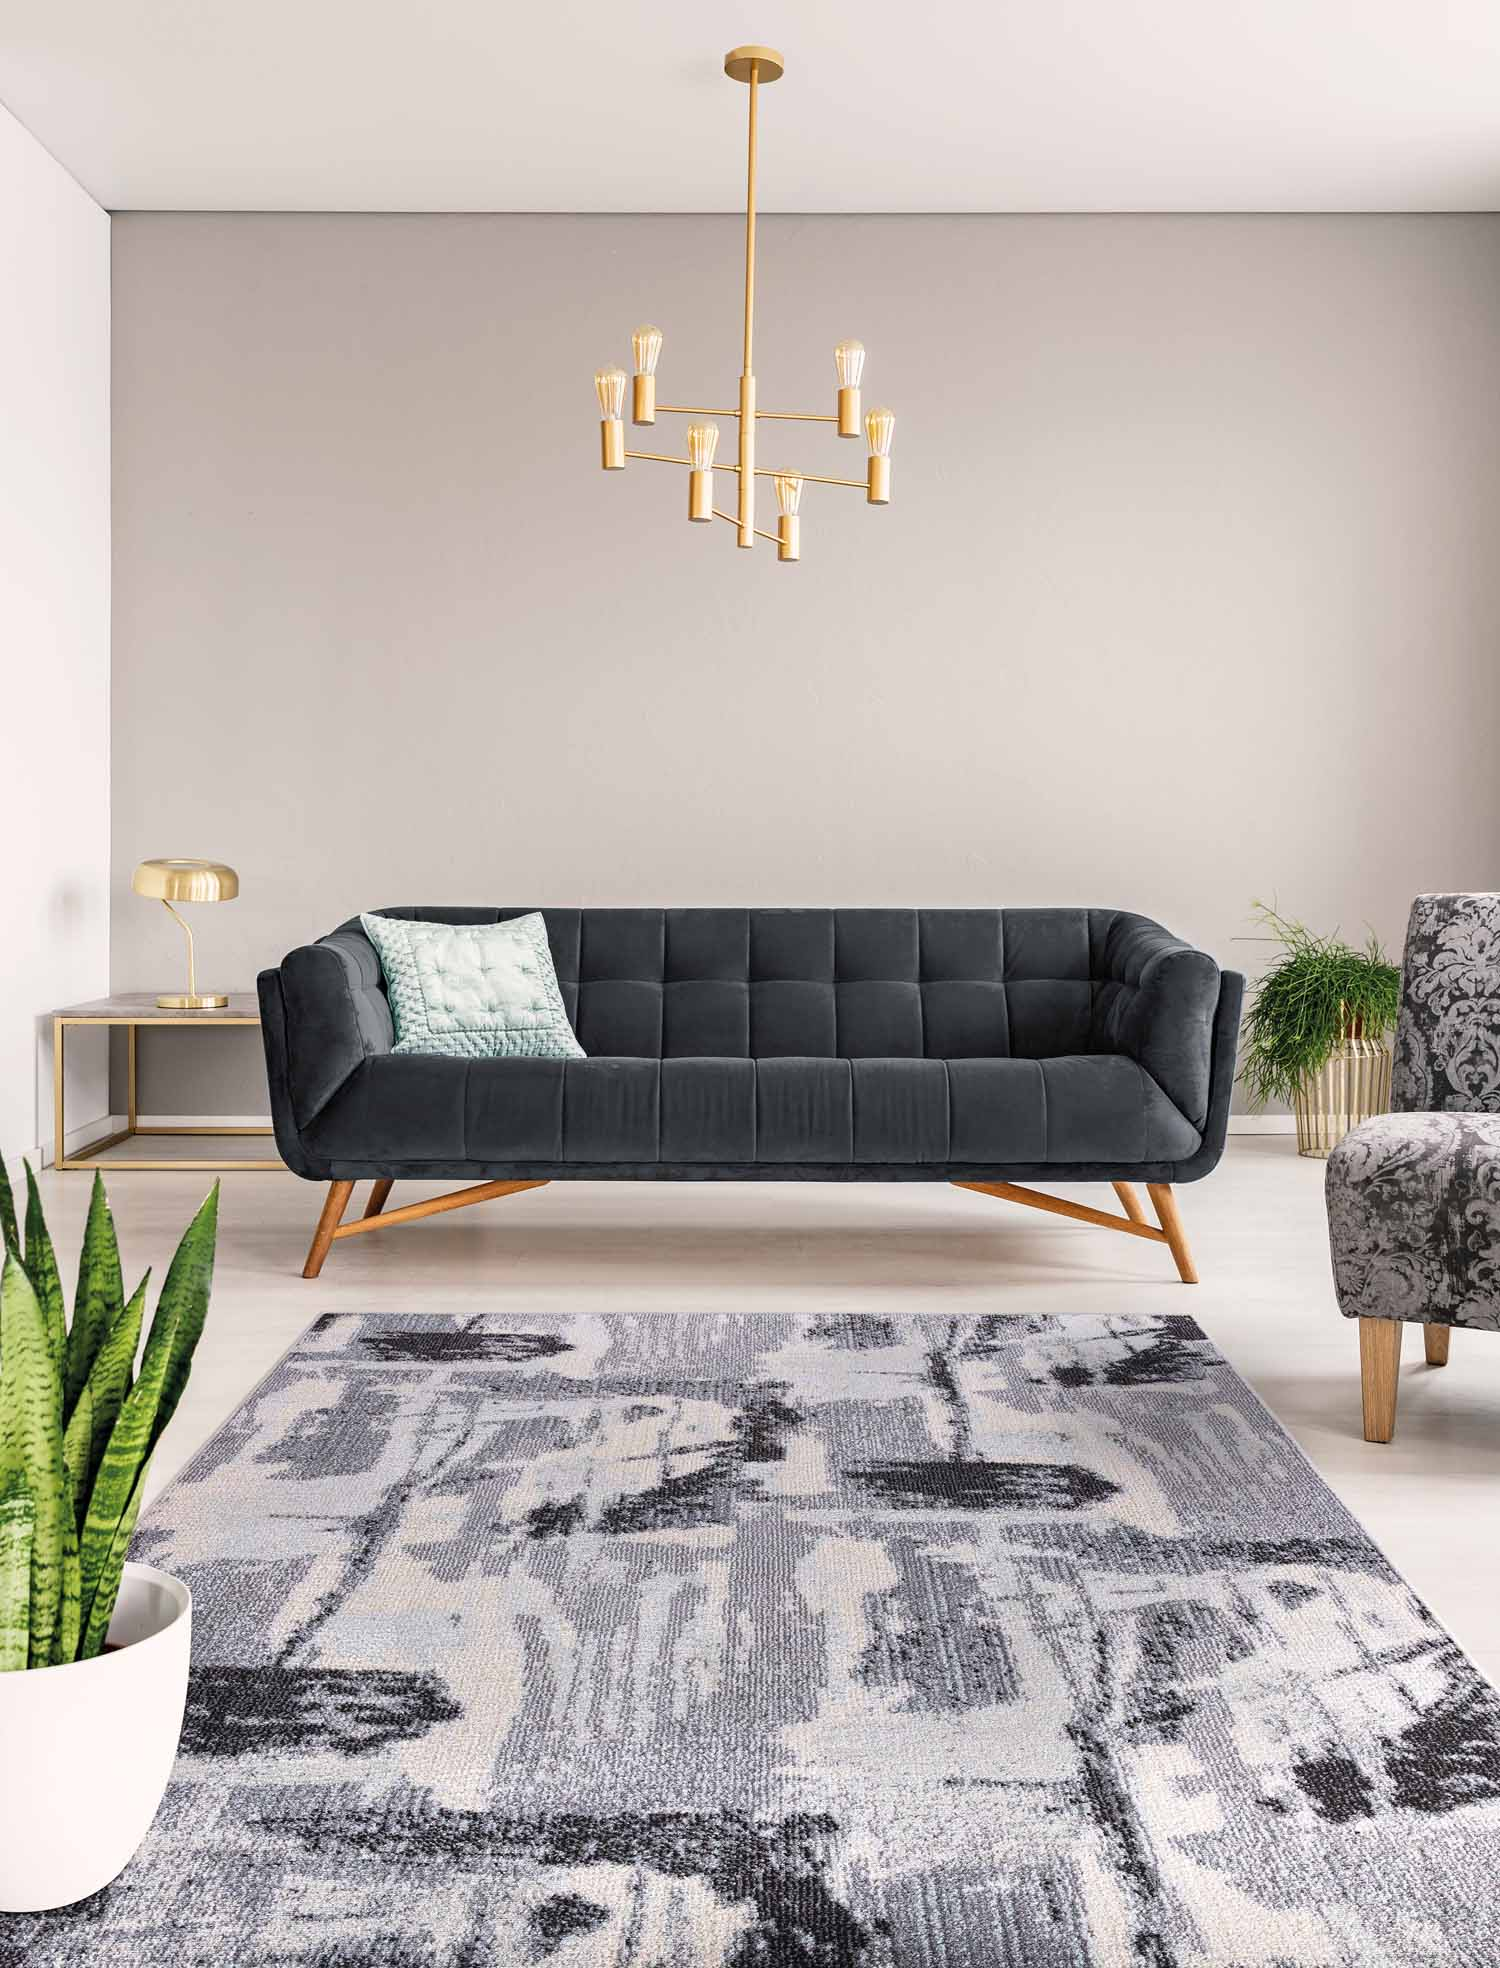 Mod Arte Jewel Collection Area Rug Transitional Contemporary Style Abstract Geometric Distressed Soft Plush Grey Living Room